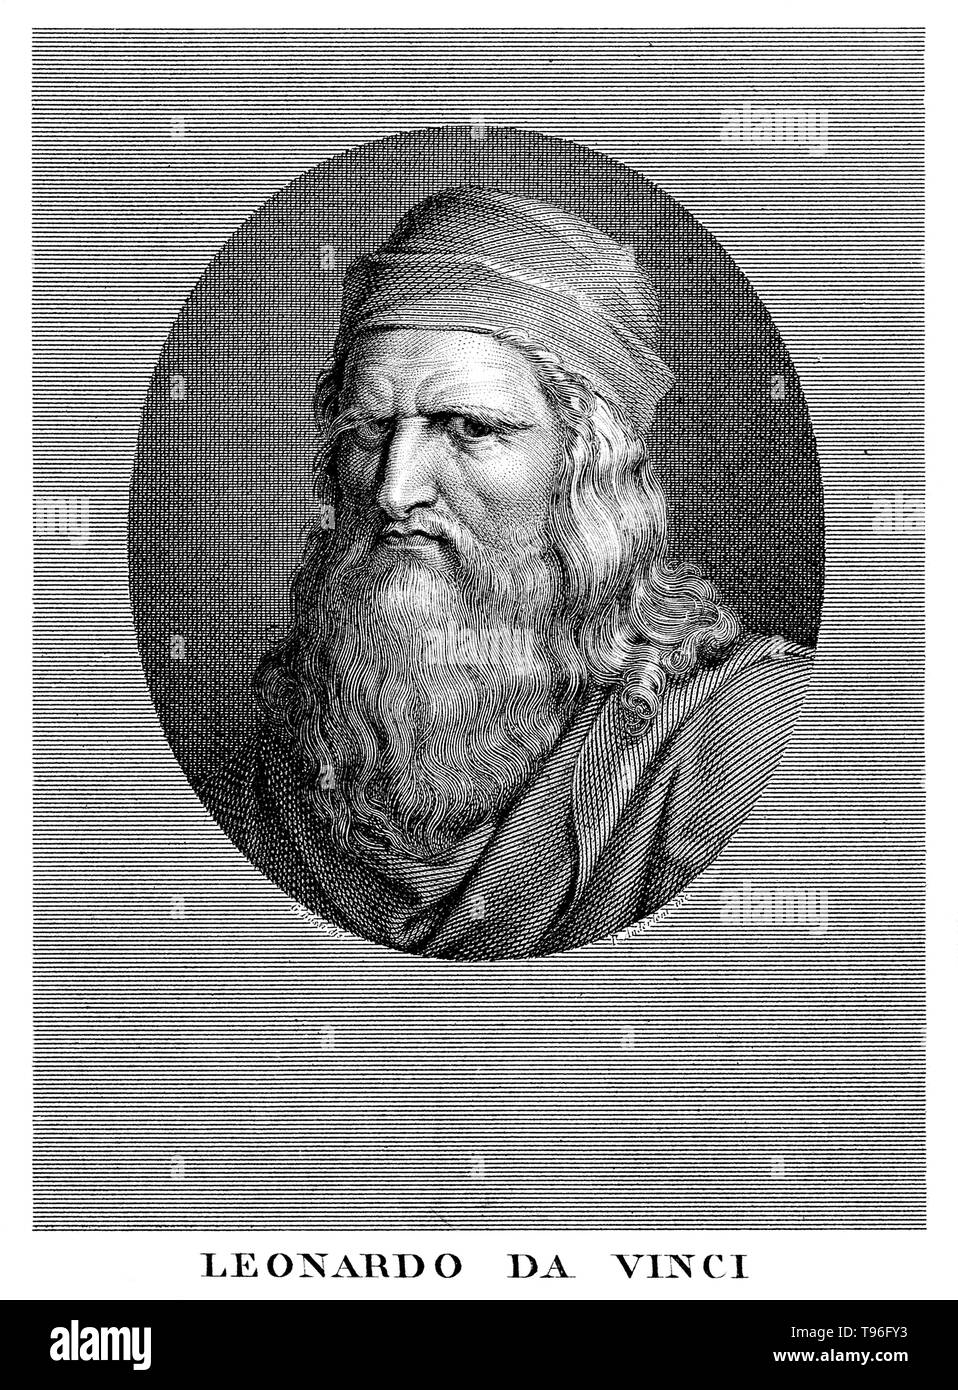 Leonardo di ser Piero da Vinci (April 15, 1452 - May 2, 1519) was an Italian Renaissance polymath: painter, sculptor, architect, musician, mathematician, engineer, inventor, anatomist, geologist, cartographer, botanist, and writer. His genius, perhaps more than that of any other figure, epitomized the Renaissance humanist ideal, often been described as the archetype of the Renaissance Man. He is widely considered to be one of the greatest painters of all time and perhaps the most diversely talented person ever to have lived. He is also revered for his technological ingenuity. He conceptualized - Stock Image